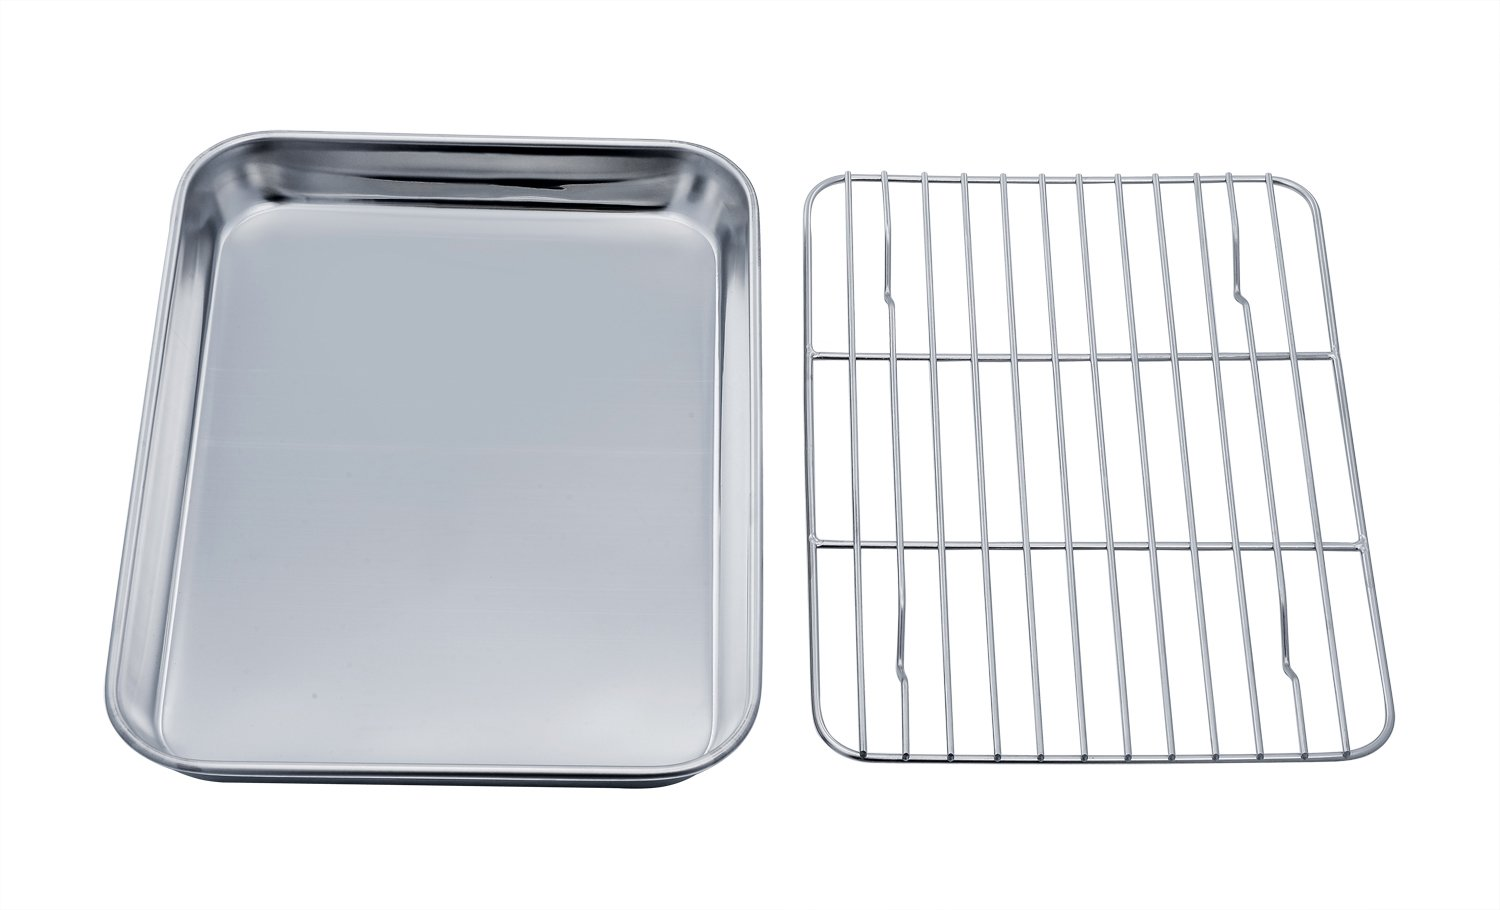 TeamFar Toaster Oven Tray and Rack Set, Stainless Steel Toaster Oven Pan Broiler Pan, Compact 7''x9''x1'', Non Toxic & Healthy, Easy Clean & Dishwasher Safe